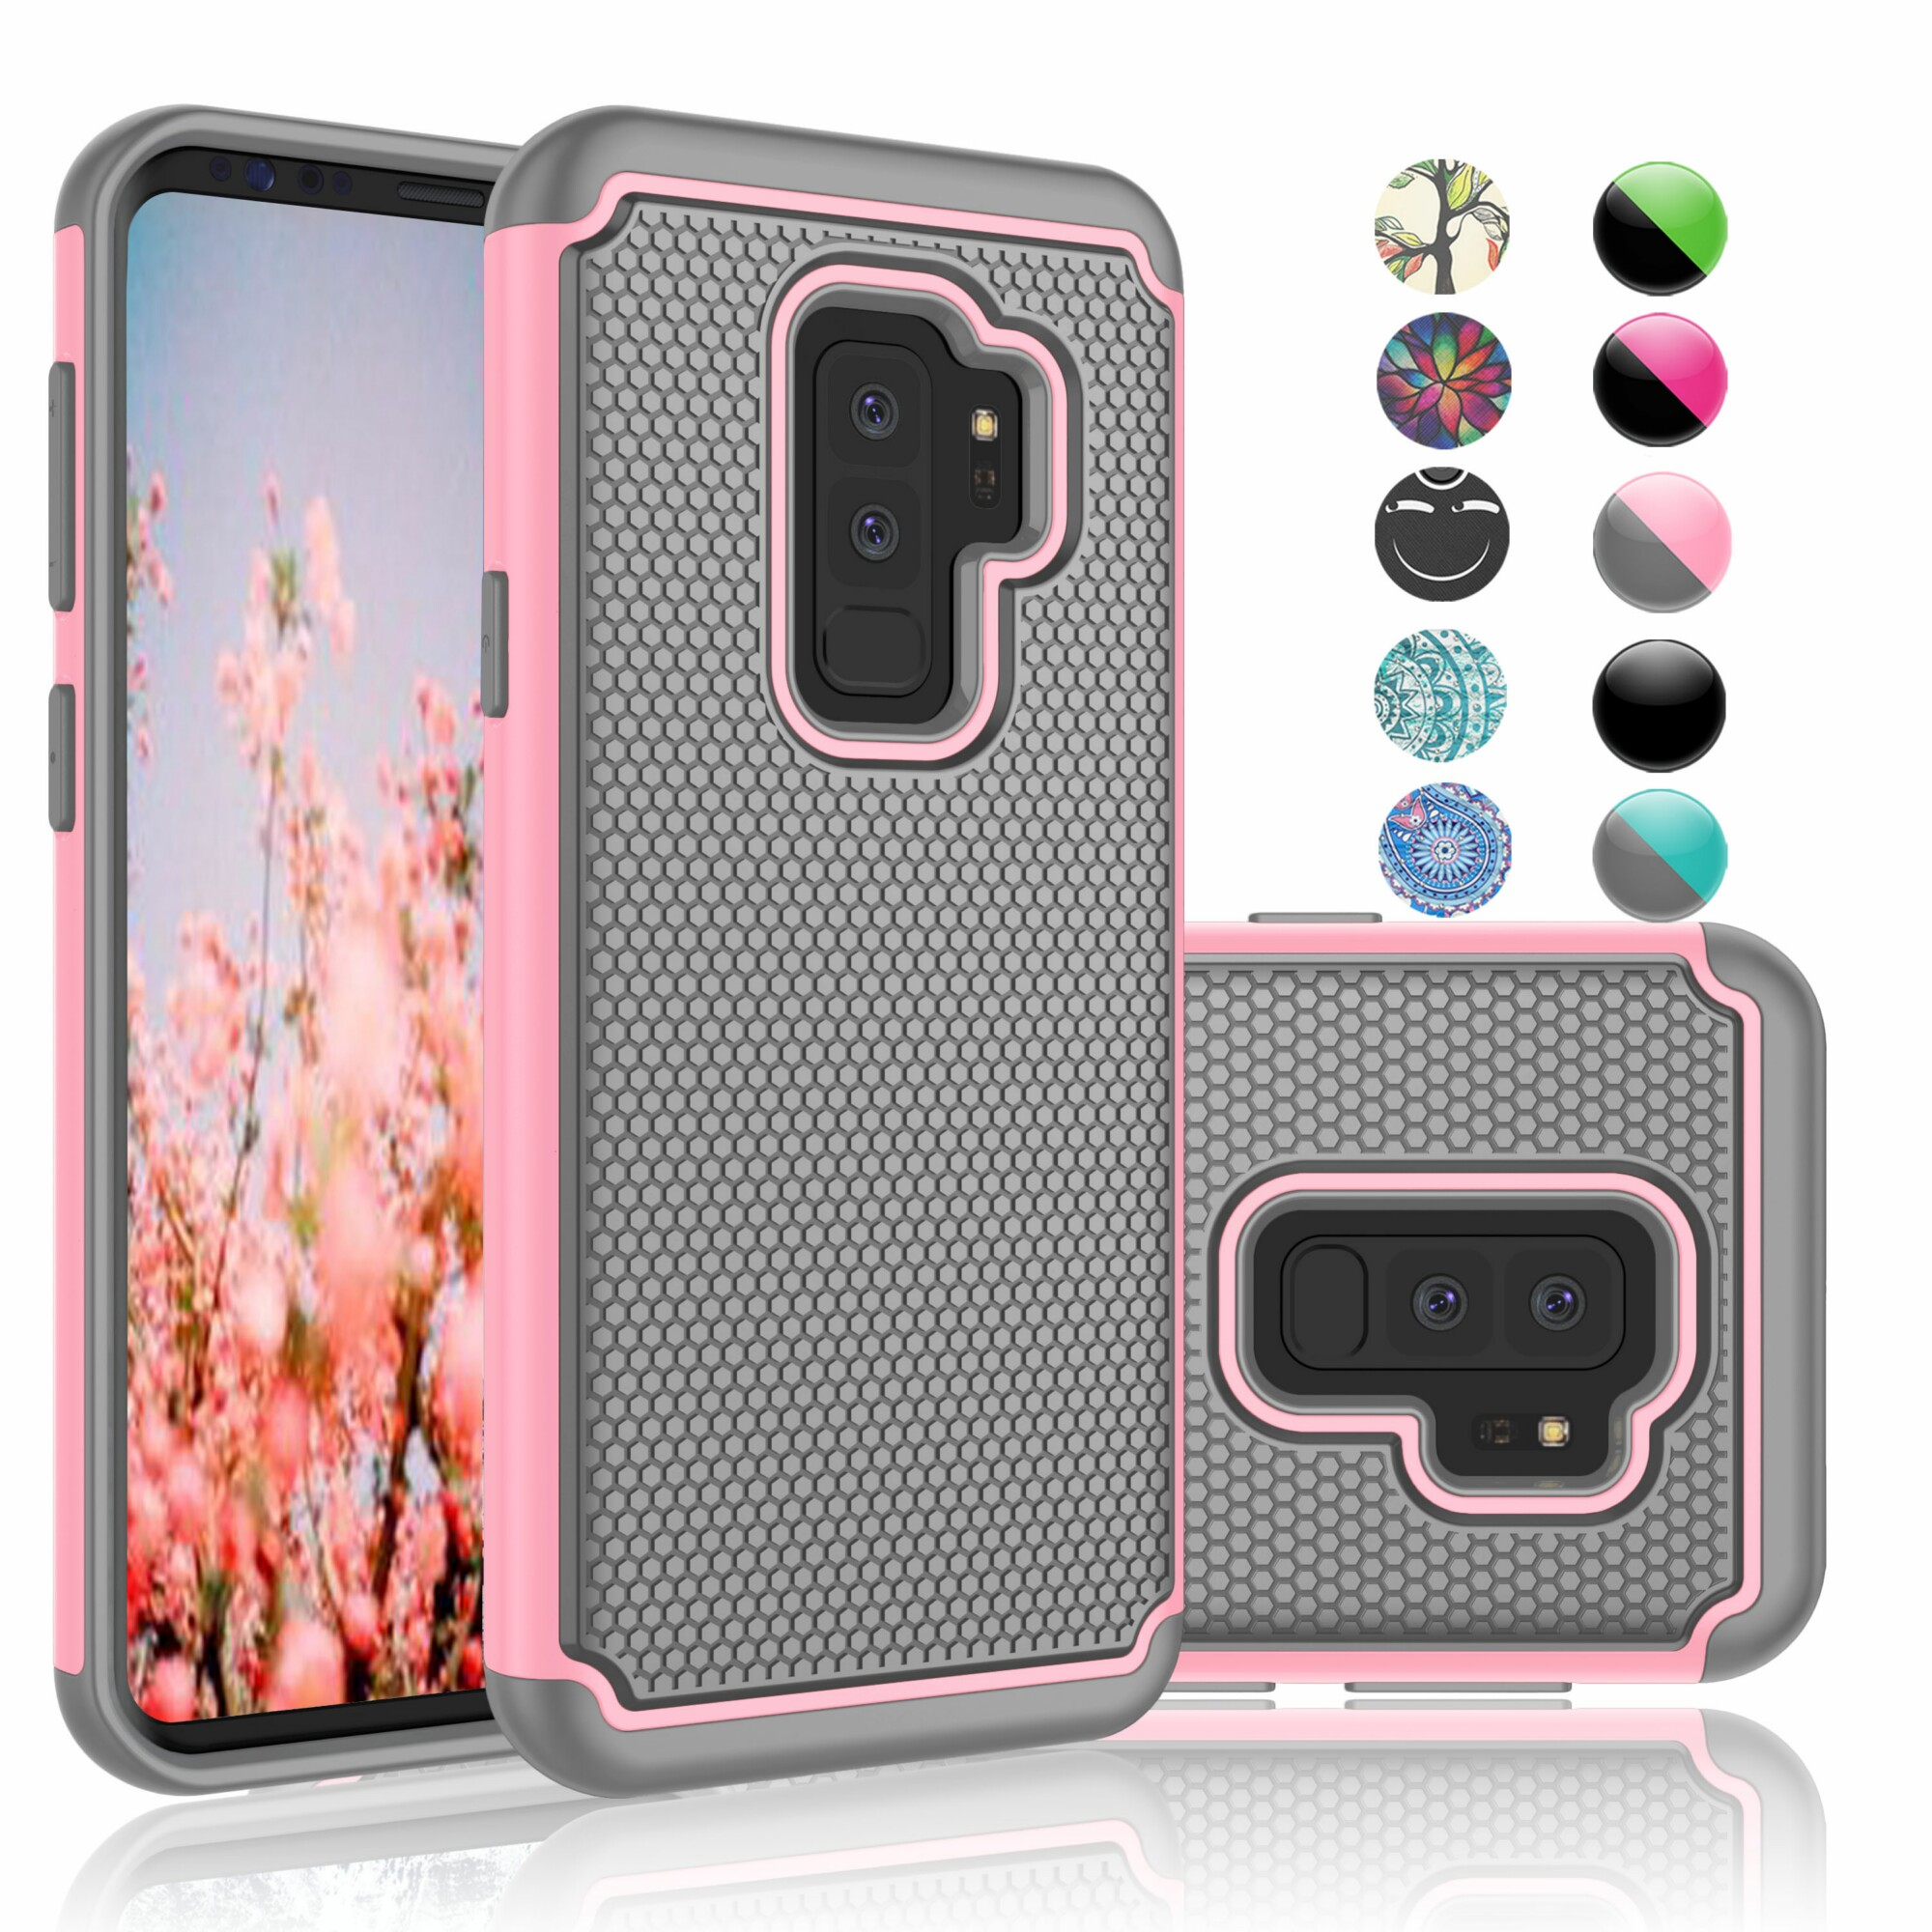 Samsung Galaxy S9 Plus Case, S9 Plus Case For Girls, Njjex [Shock Absorption] Drop Protection Hybrid Dual Layer Armor Defender Protective Case Cover For Samsung Galaxy S9 Plus -Baby Pink